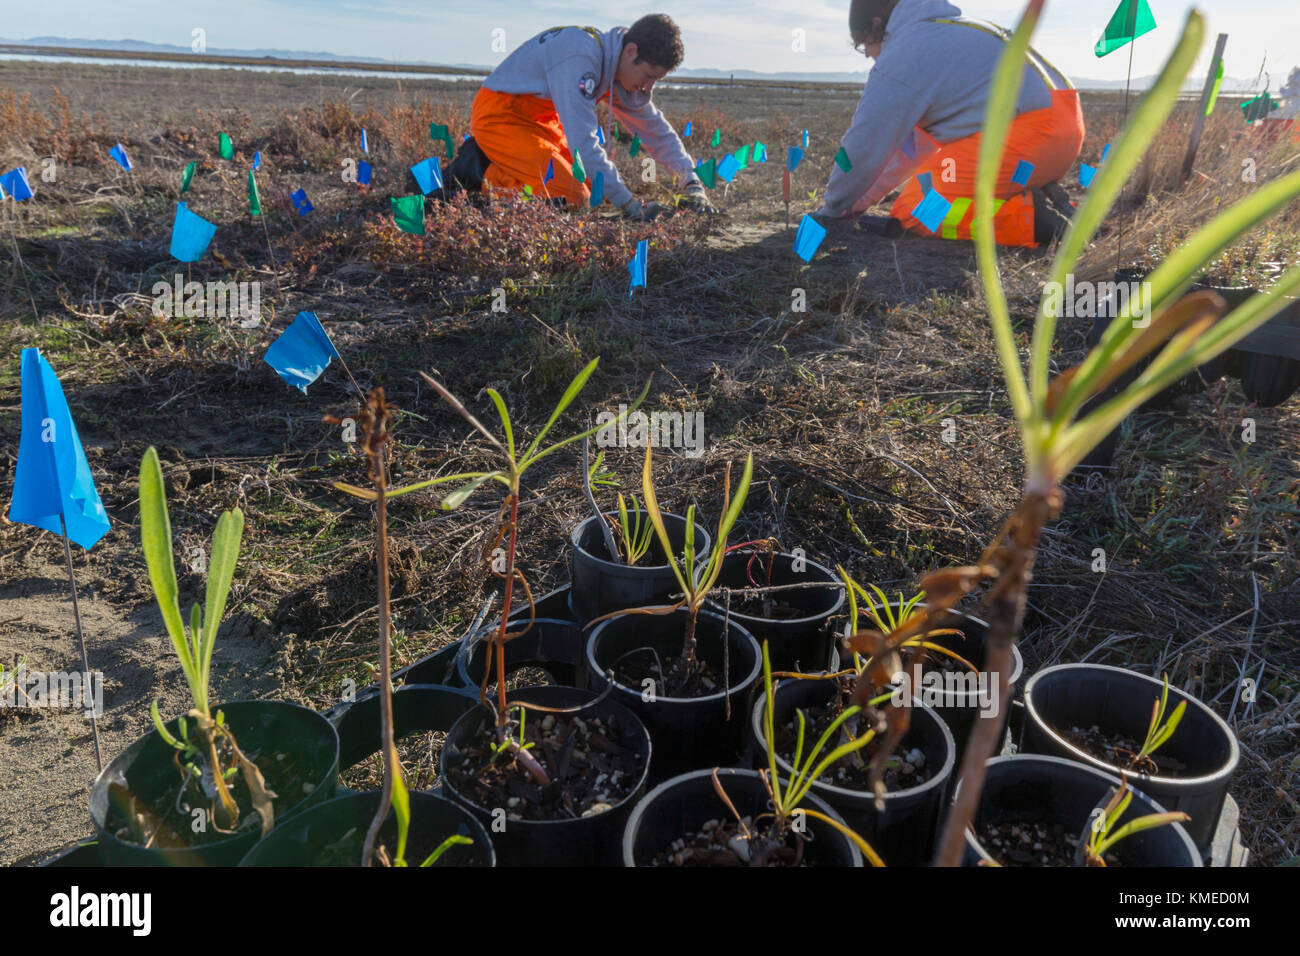 seedlings and AmeriCorps volunteers planting native wetlands species in the restored Hamilton Field Tidal Marsh,Novato,California,USA - Stock Image